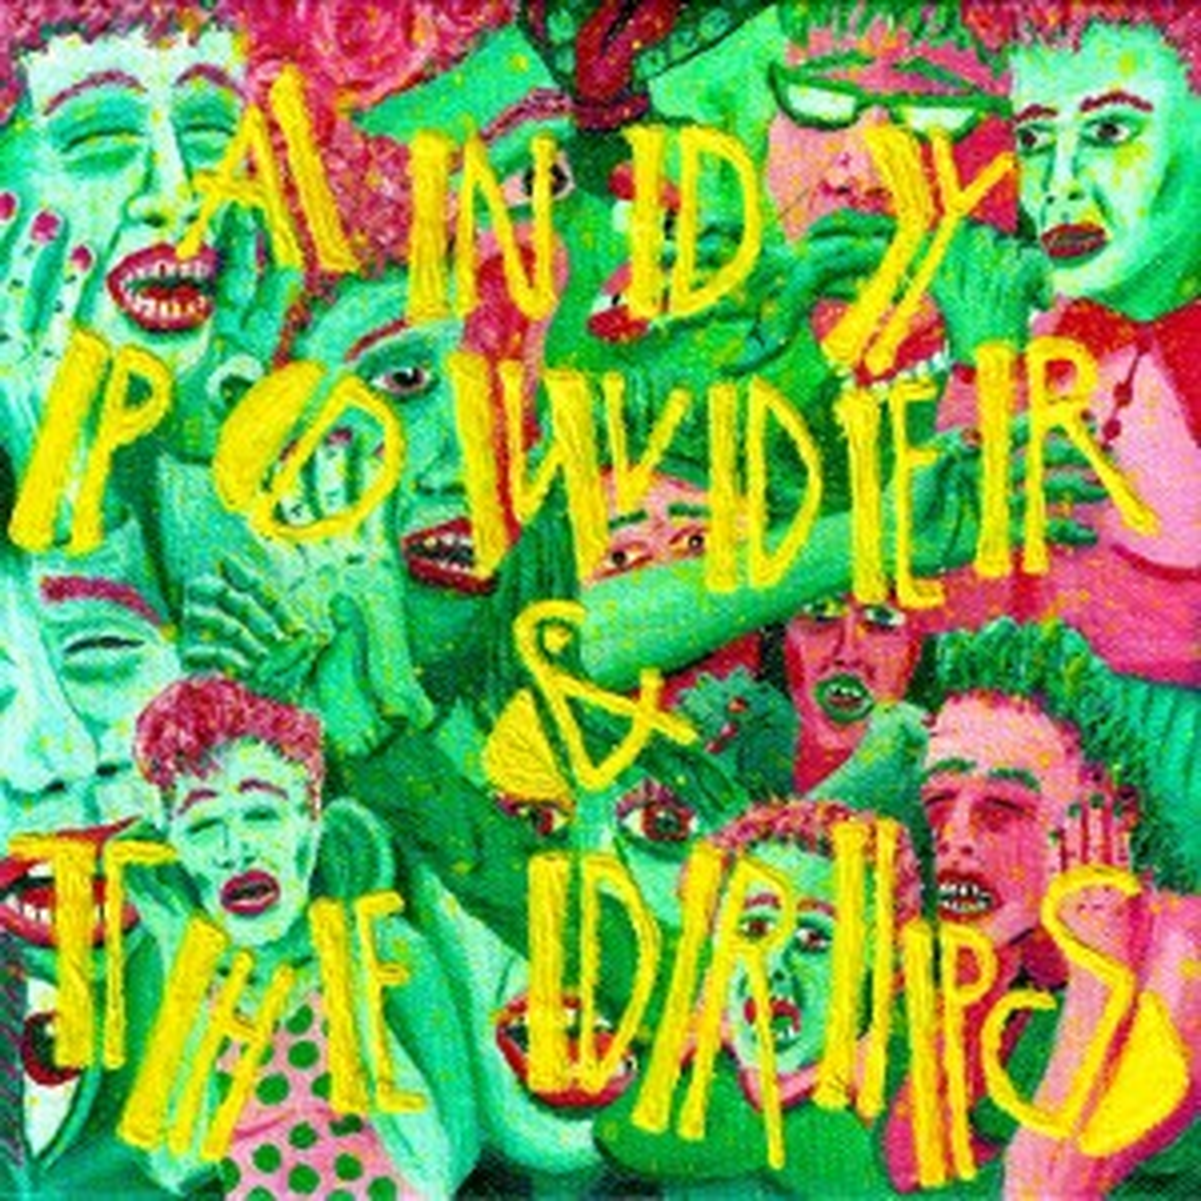 Andy Powder & The Drips